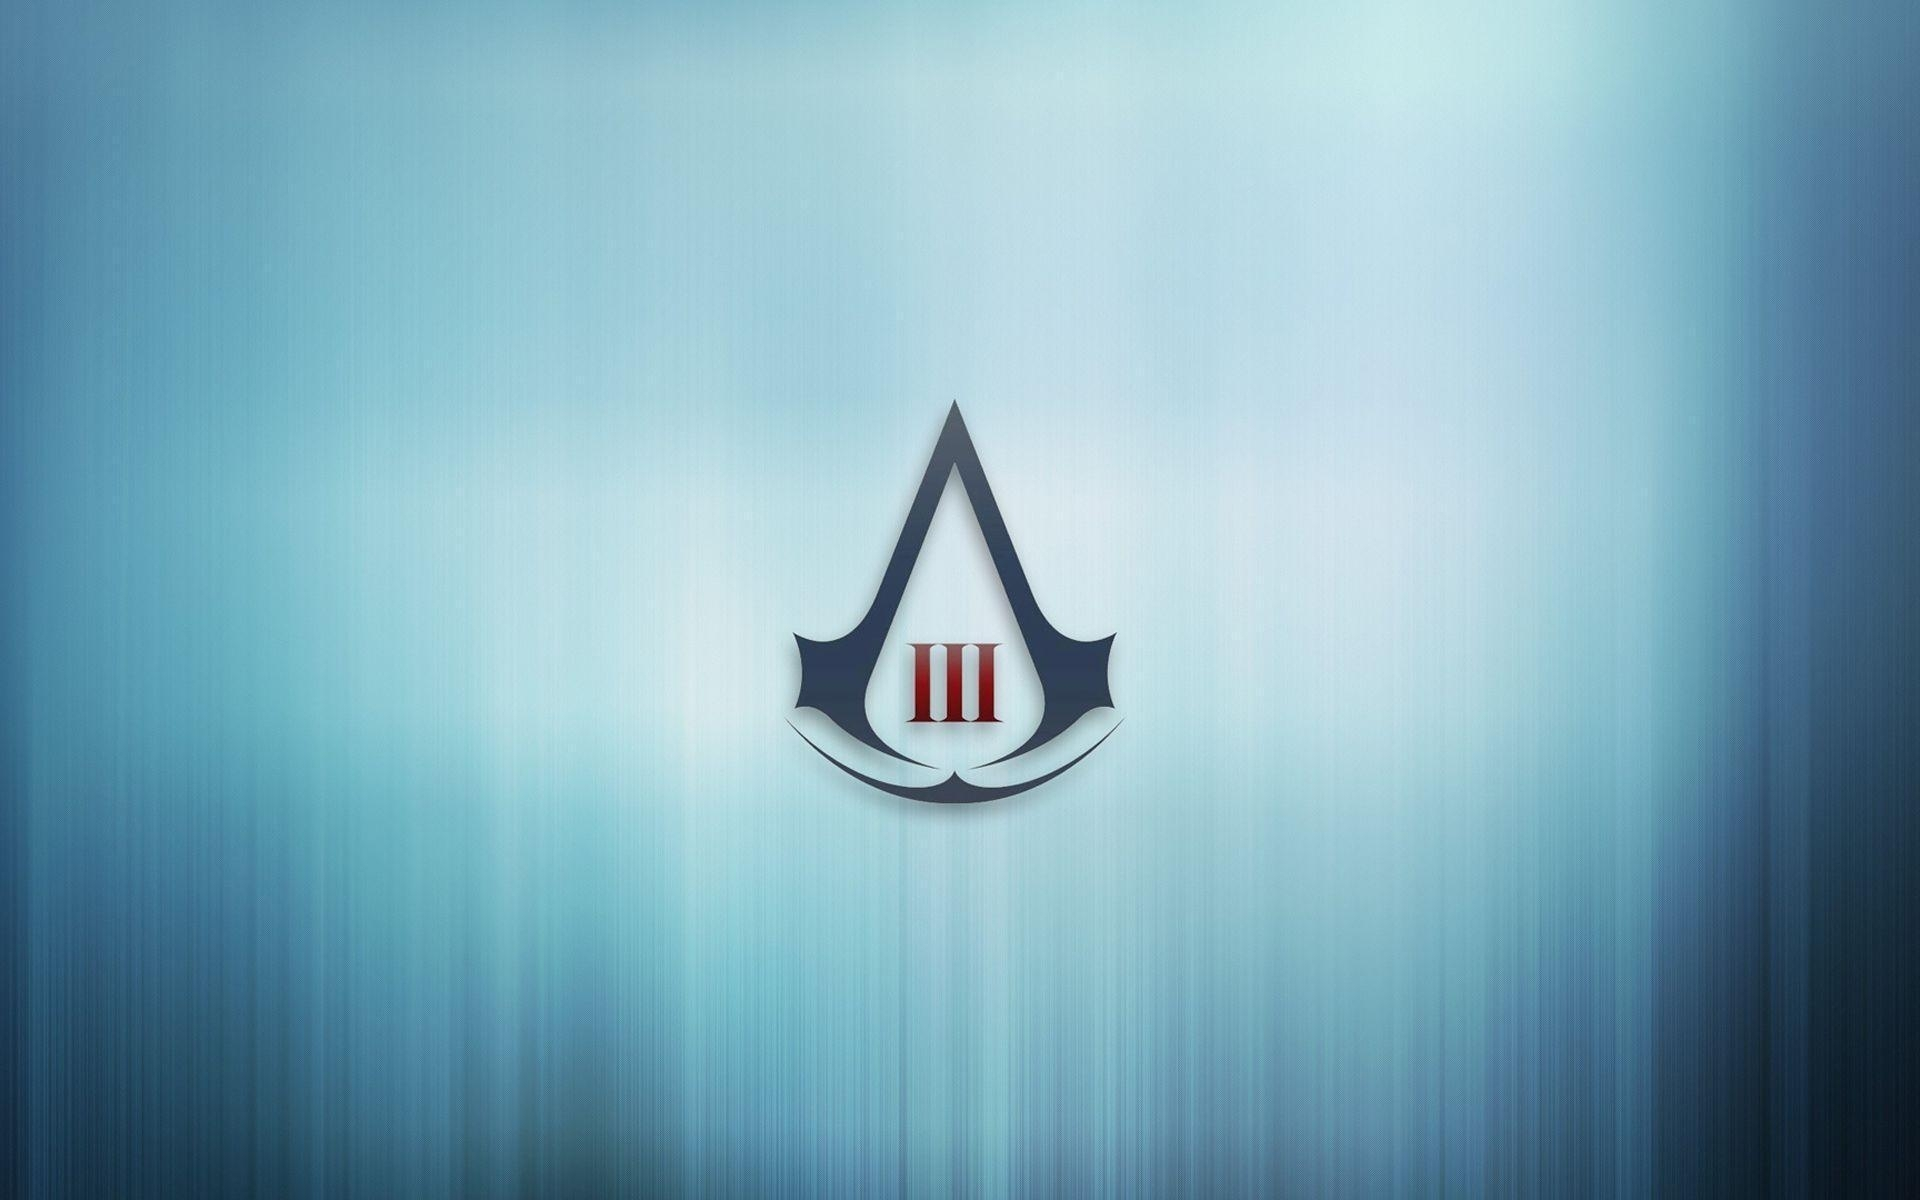 10 top assassin's creed logo wallpaper hd full hd 1080p for pc